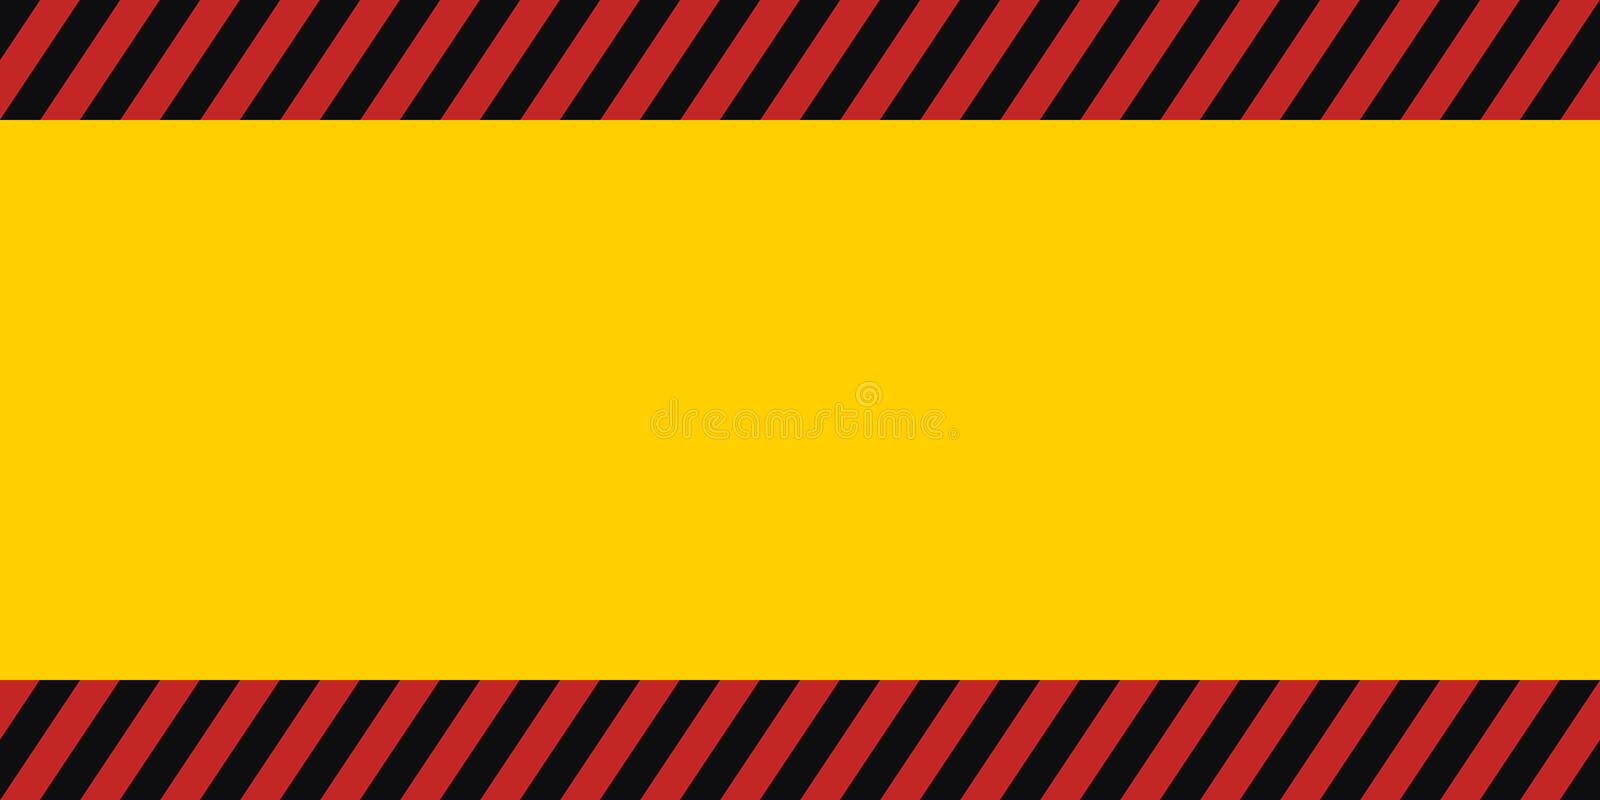 Horizontal warning banner frame, red yellow black, diagonal stripes, hazard backdrop wallpaper danger vector stock illustration